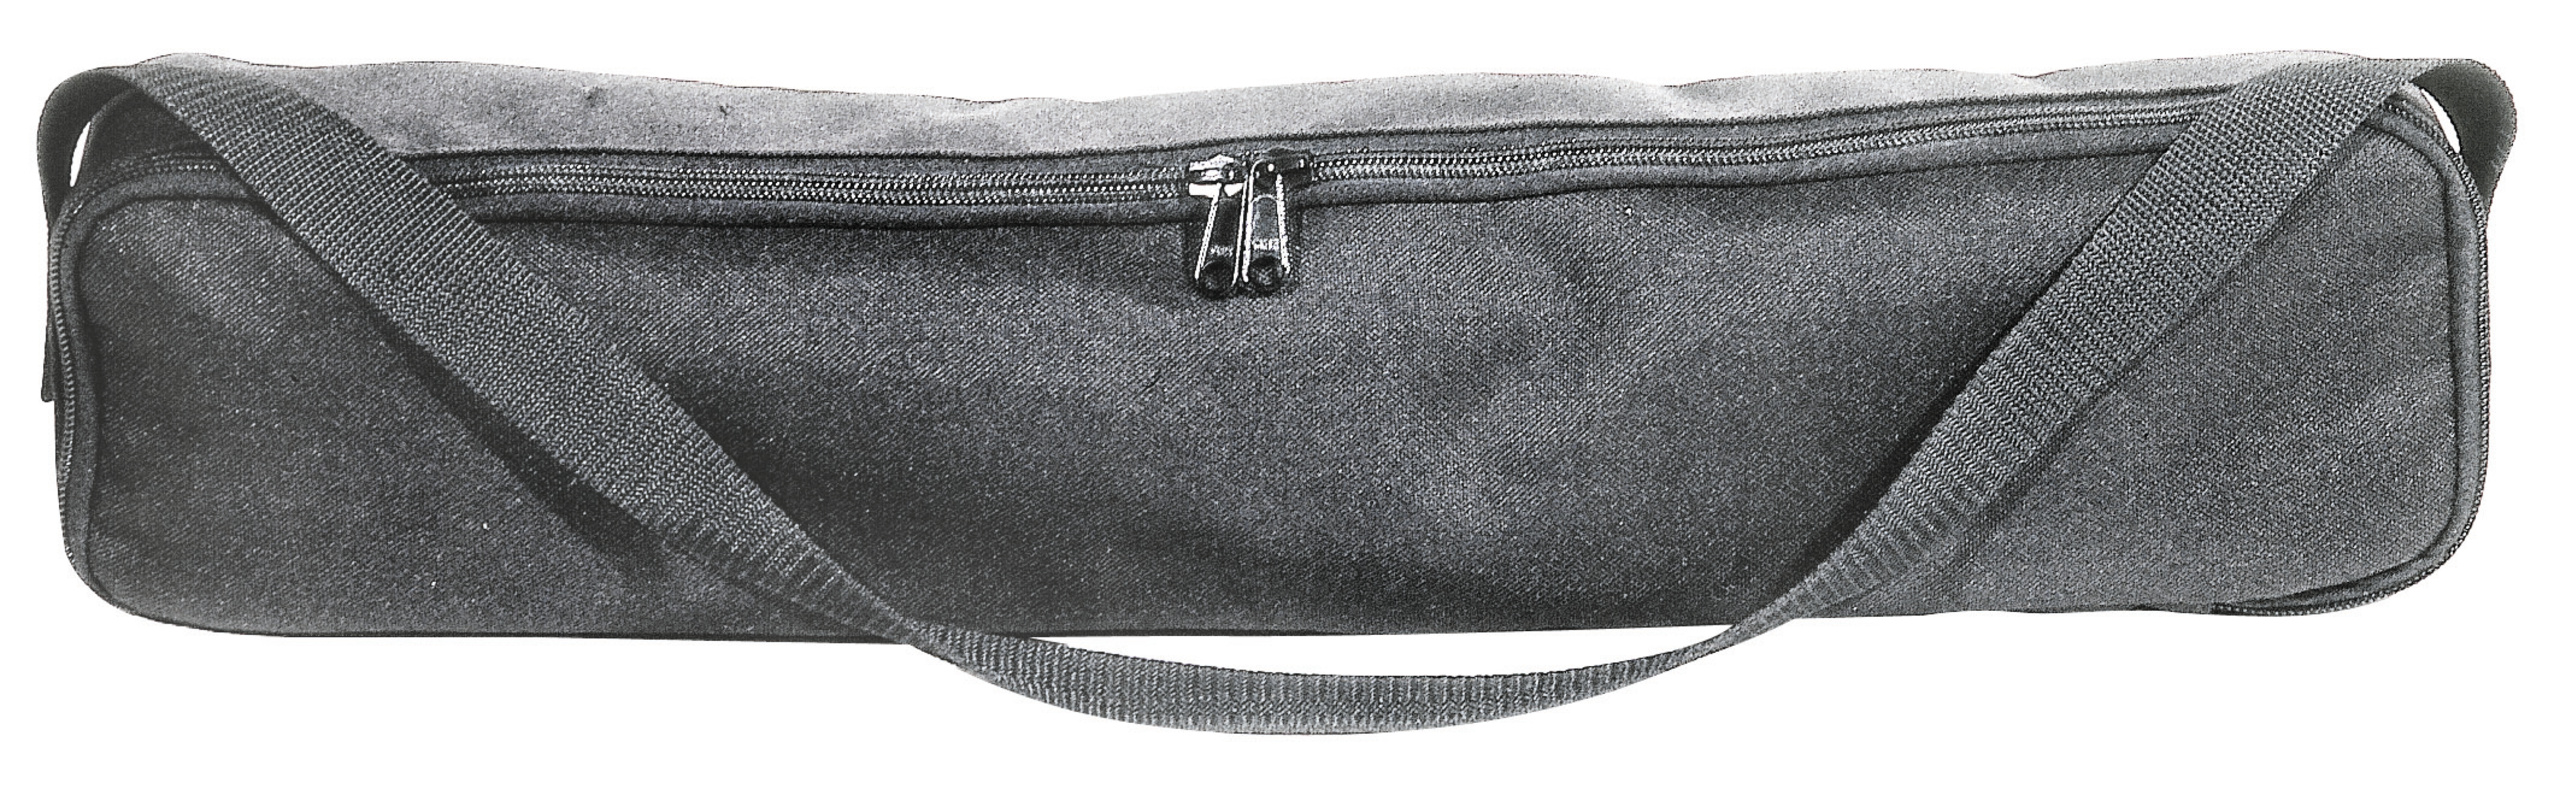 <br/>Carrying bag